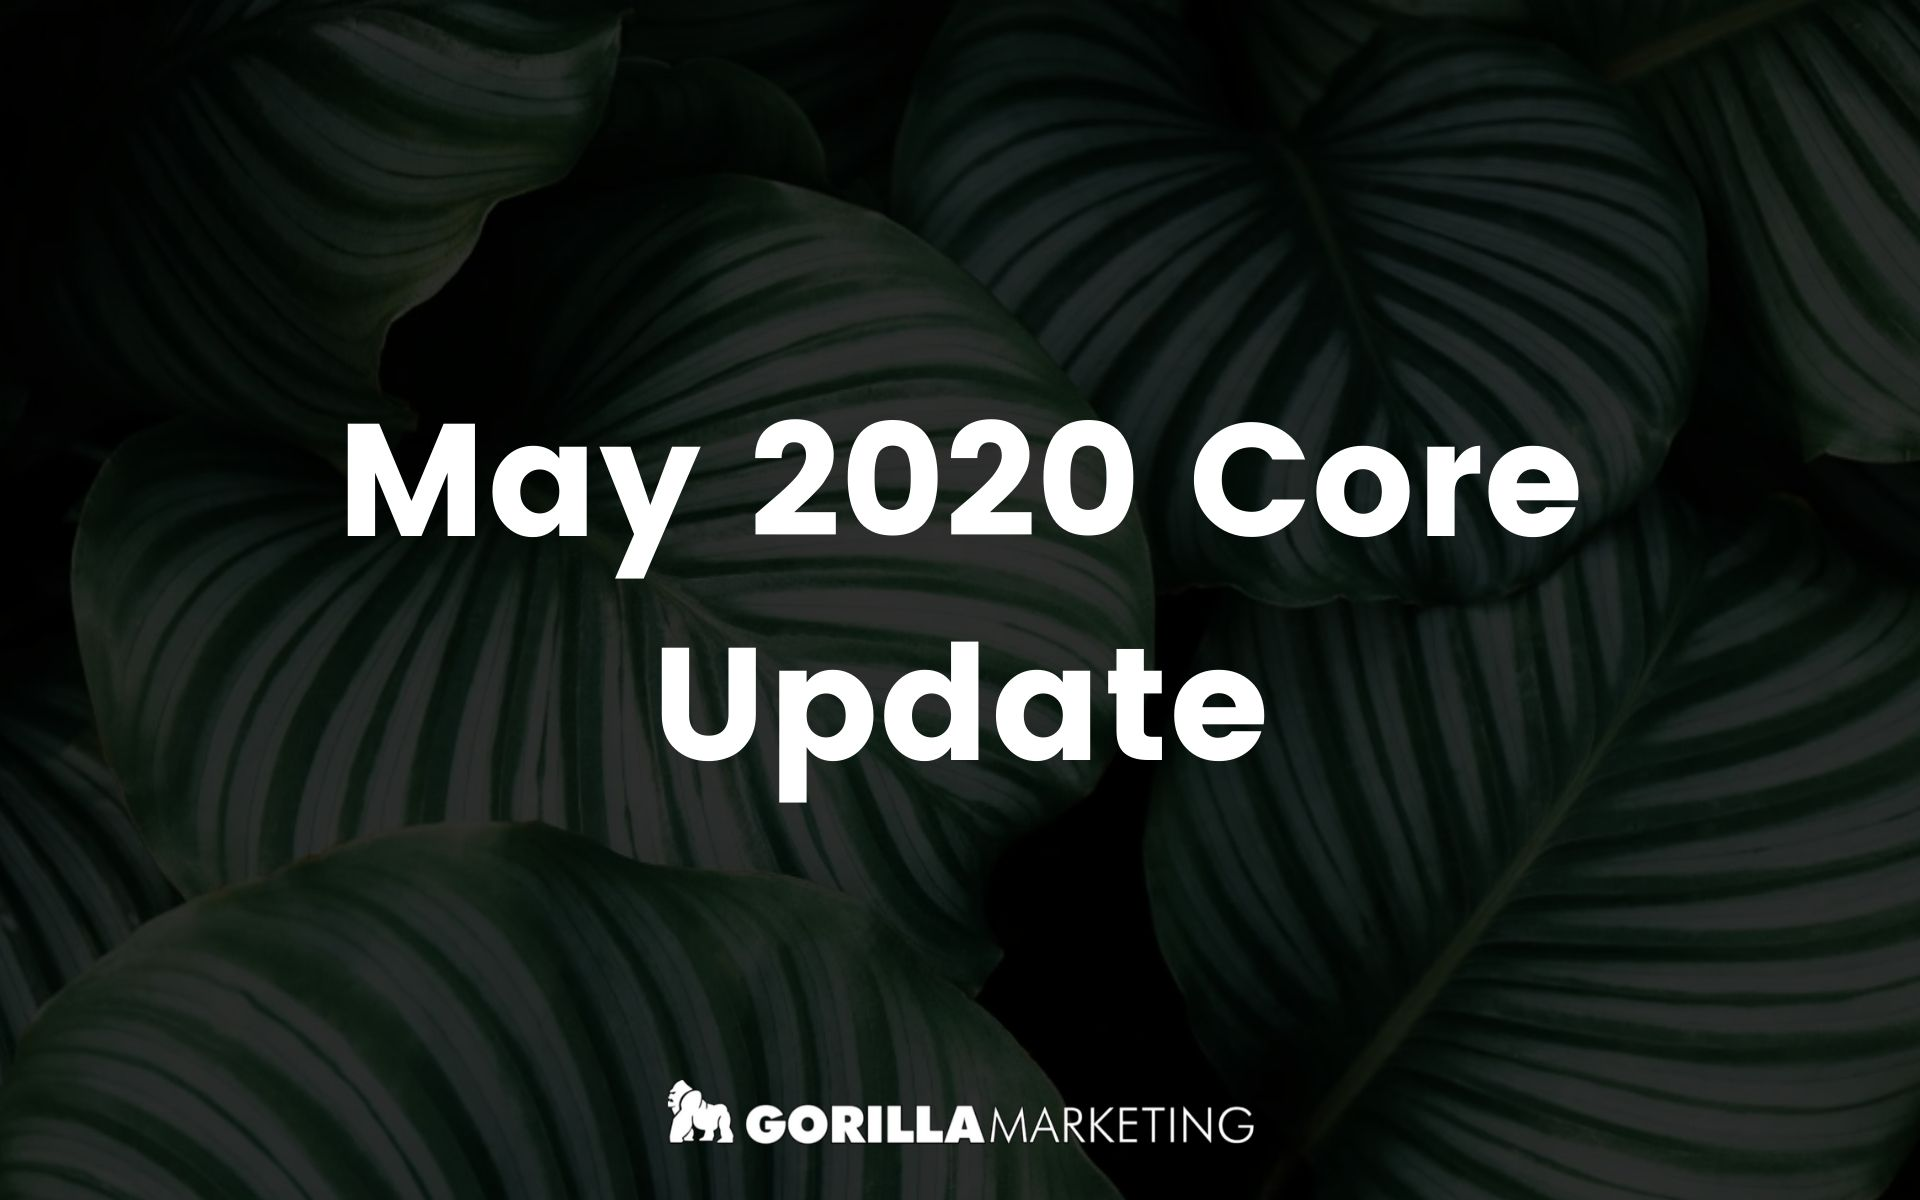 The Google May 2020 Update